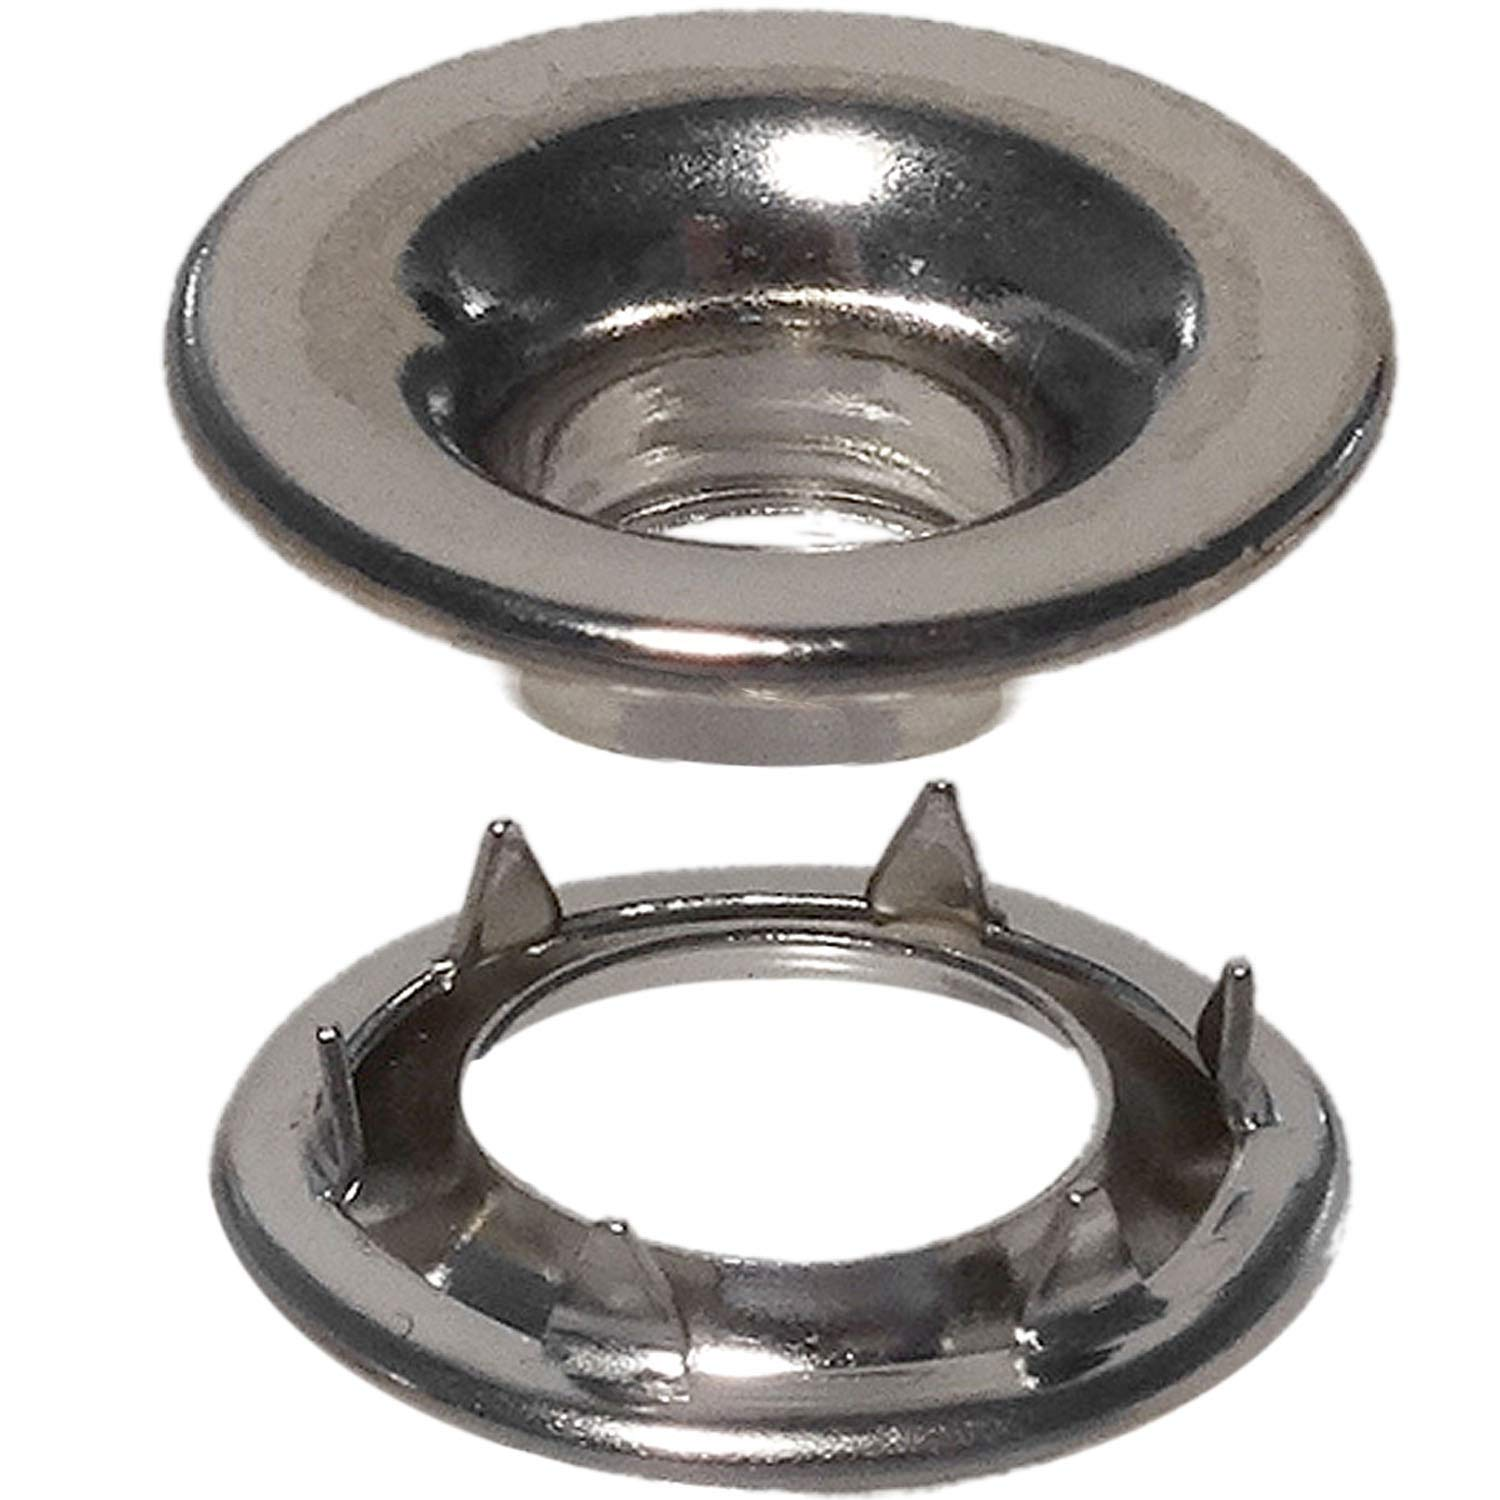 Stimpson Rolled Rim Grommet and Spur Washer Nickel-Plated Durable, Reliable, Heavy-Duty #0 Set (3,600 Pieces of Each)